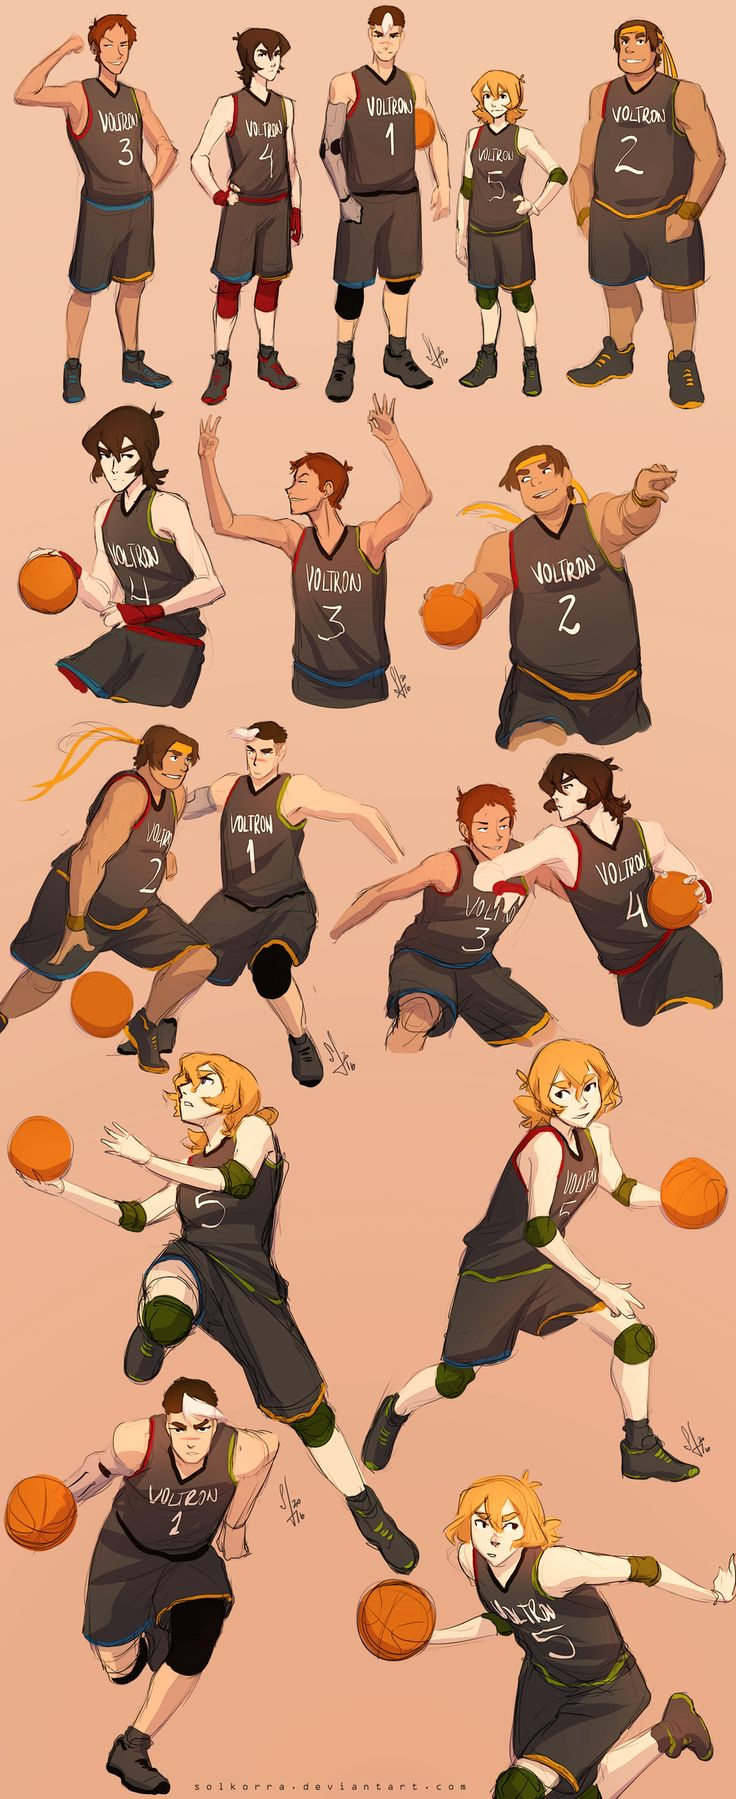 viltron team (Basketball Drawings)